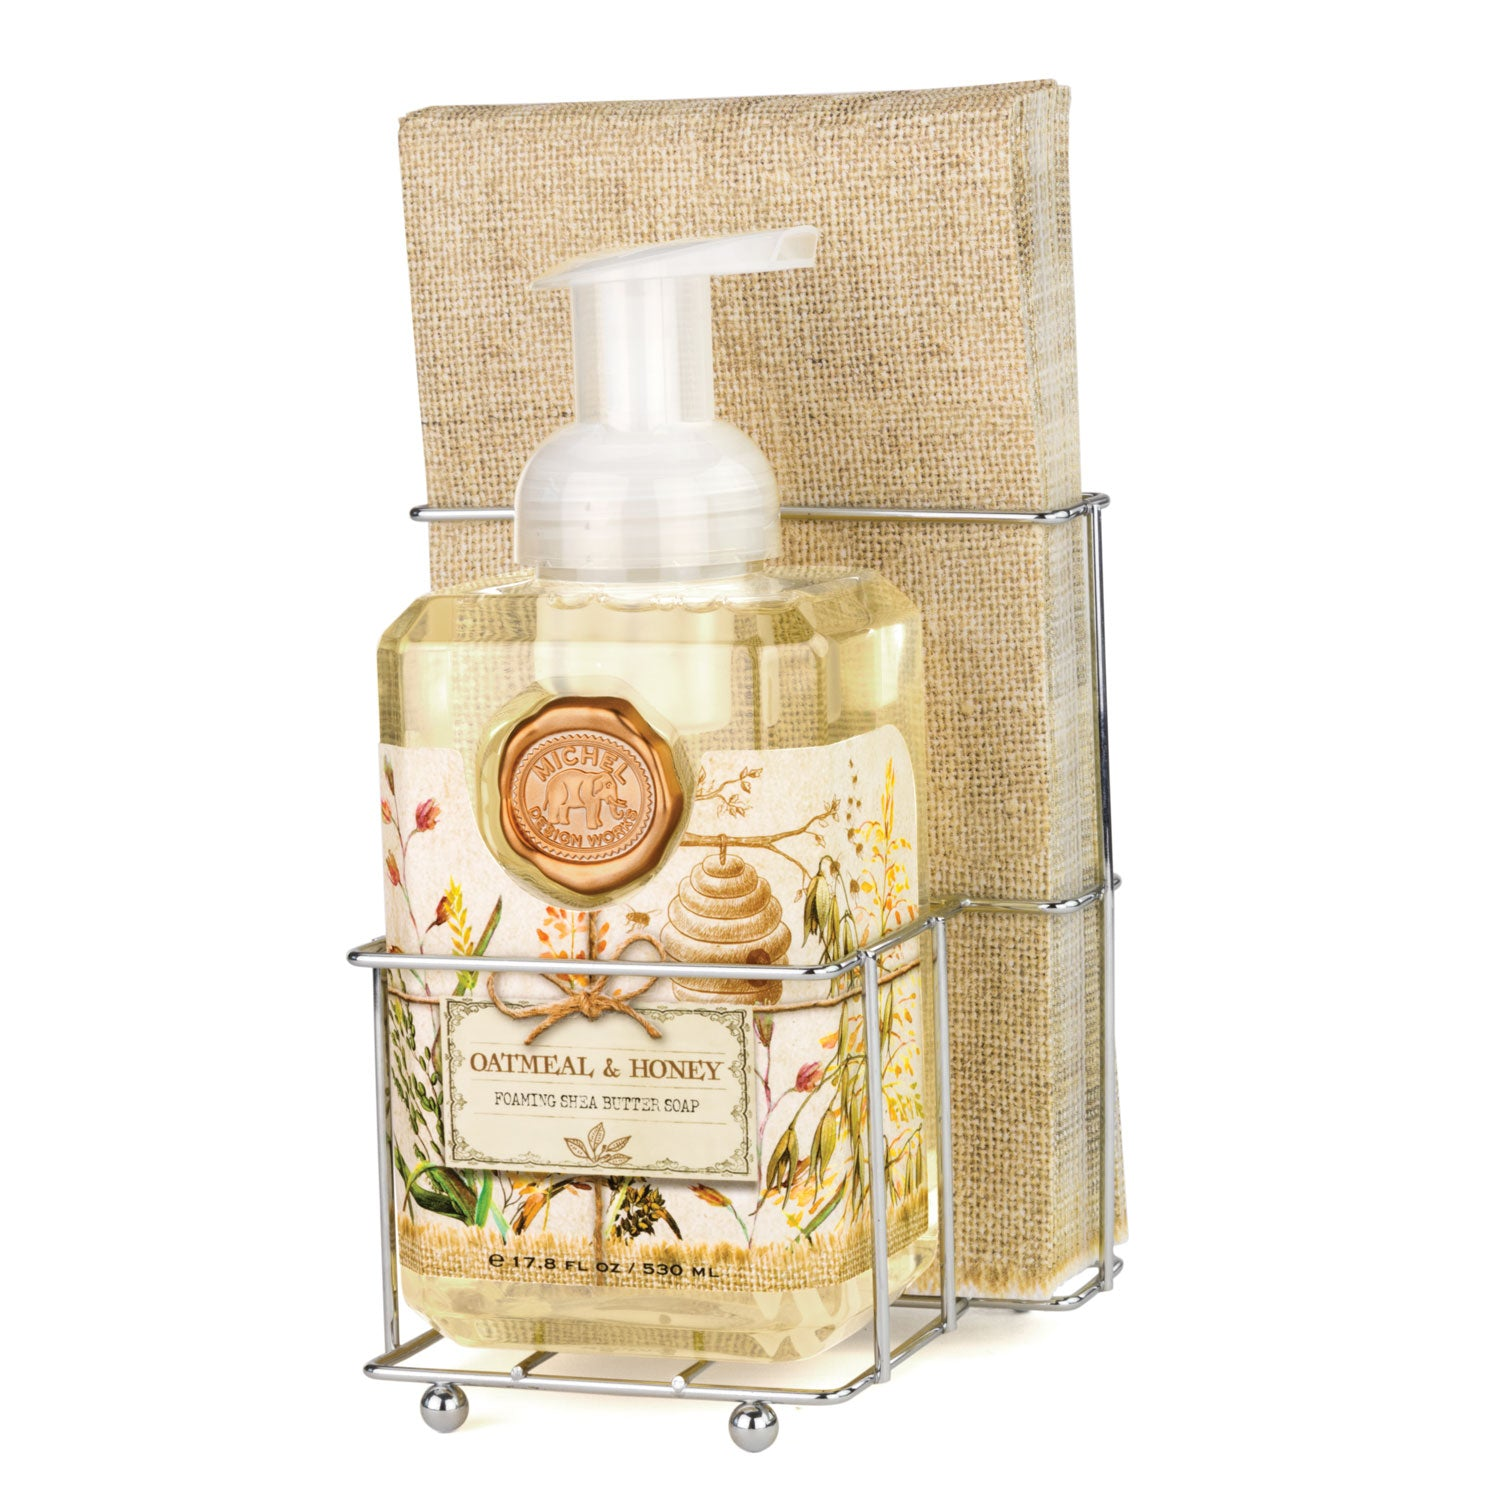 Oatmeal & Honey Foaming Hand Soap Napkin Set